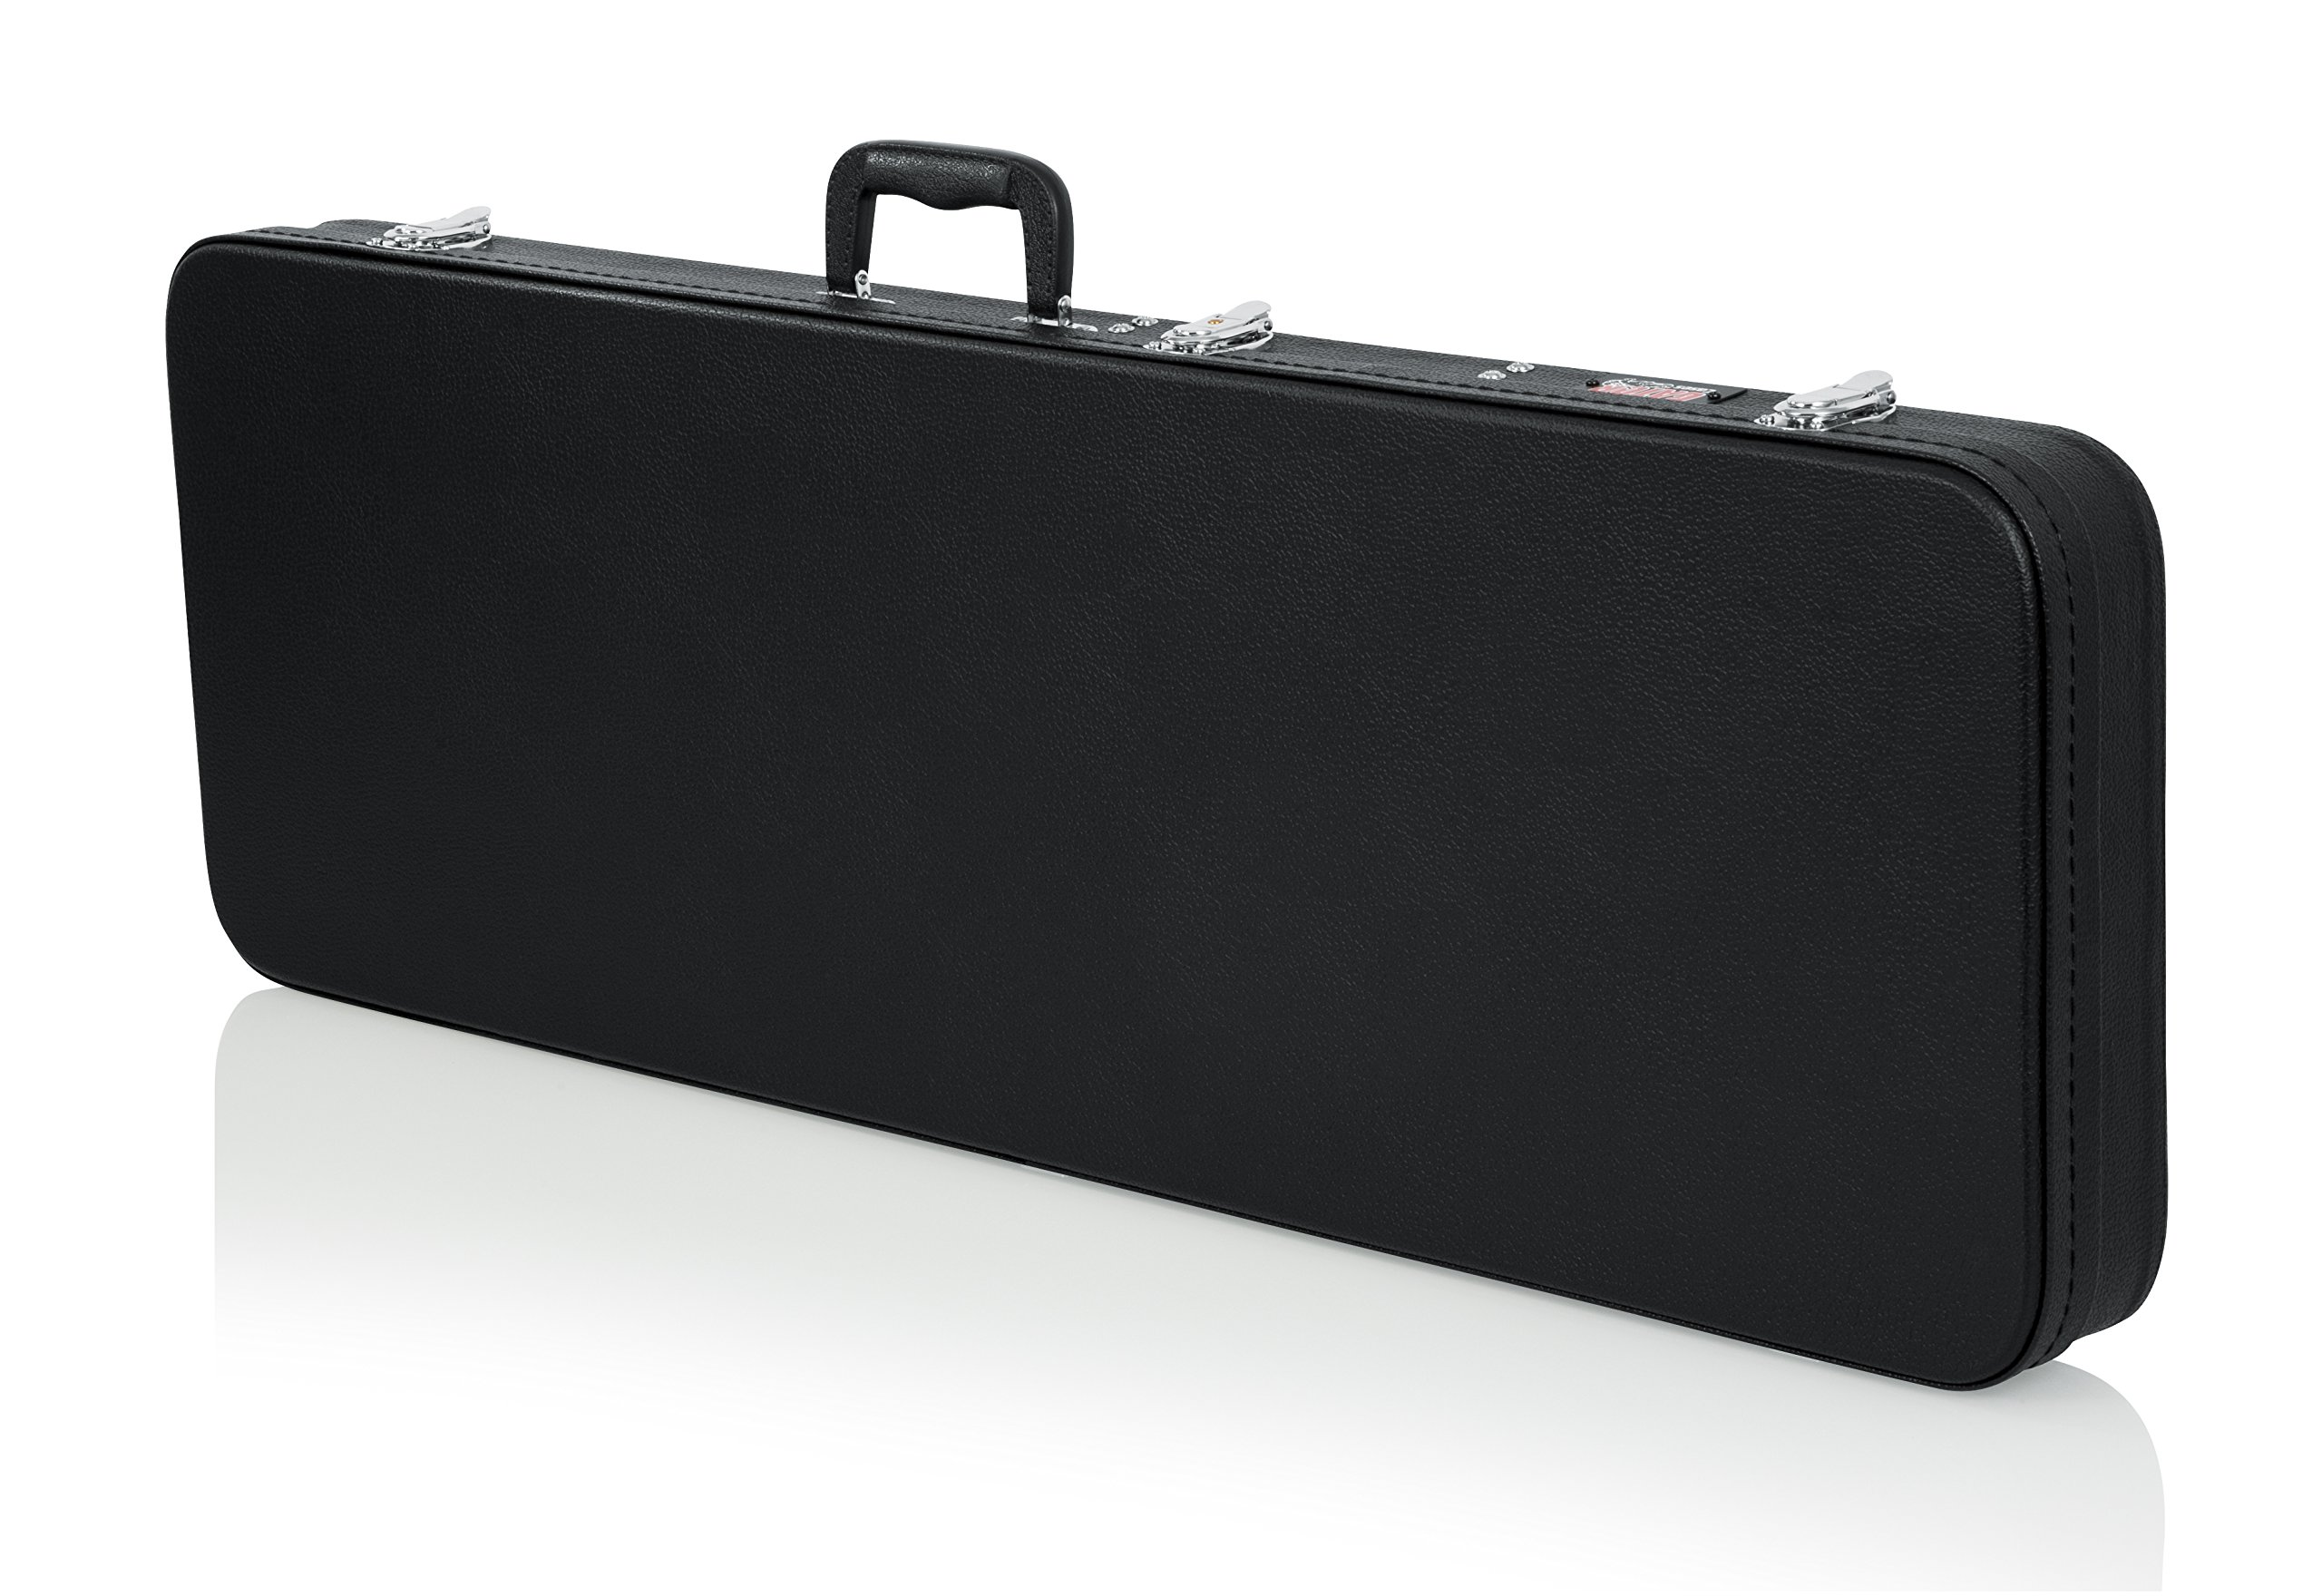 Gator Cases Hard-Shell Wood Case for Standard Electric Guitars; Fits Fender Stratocaster/Telecaster, More (GWE-ELECTRIC)